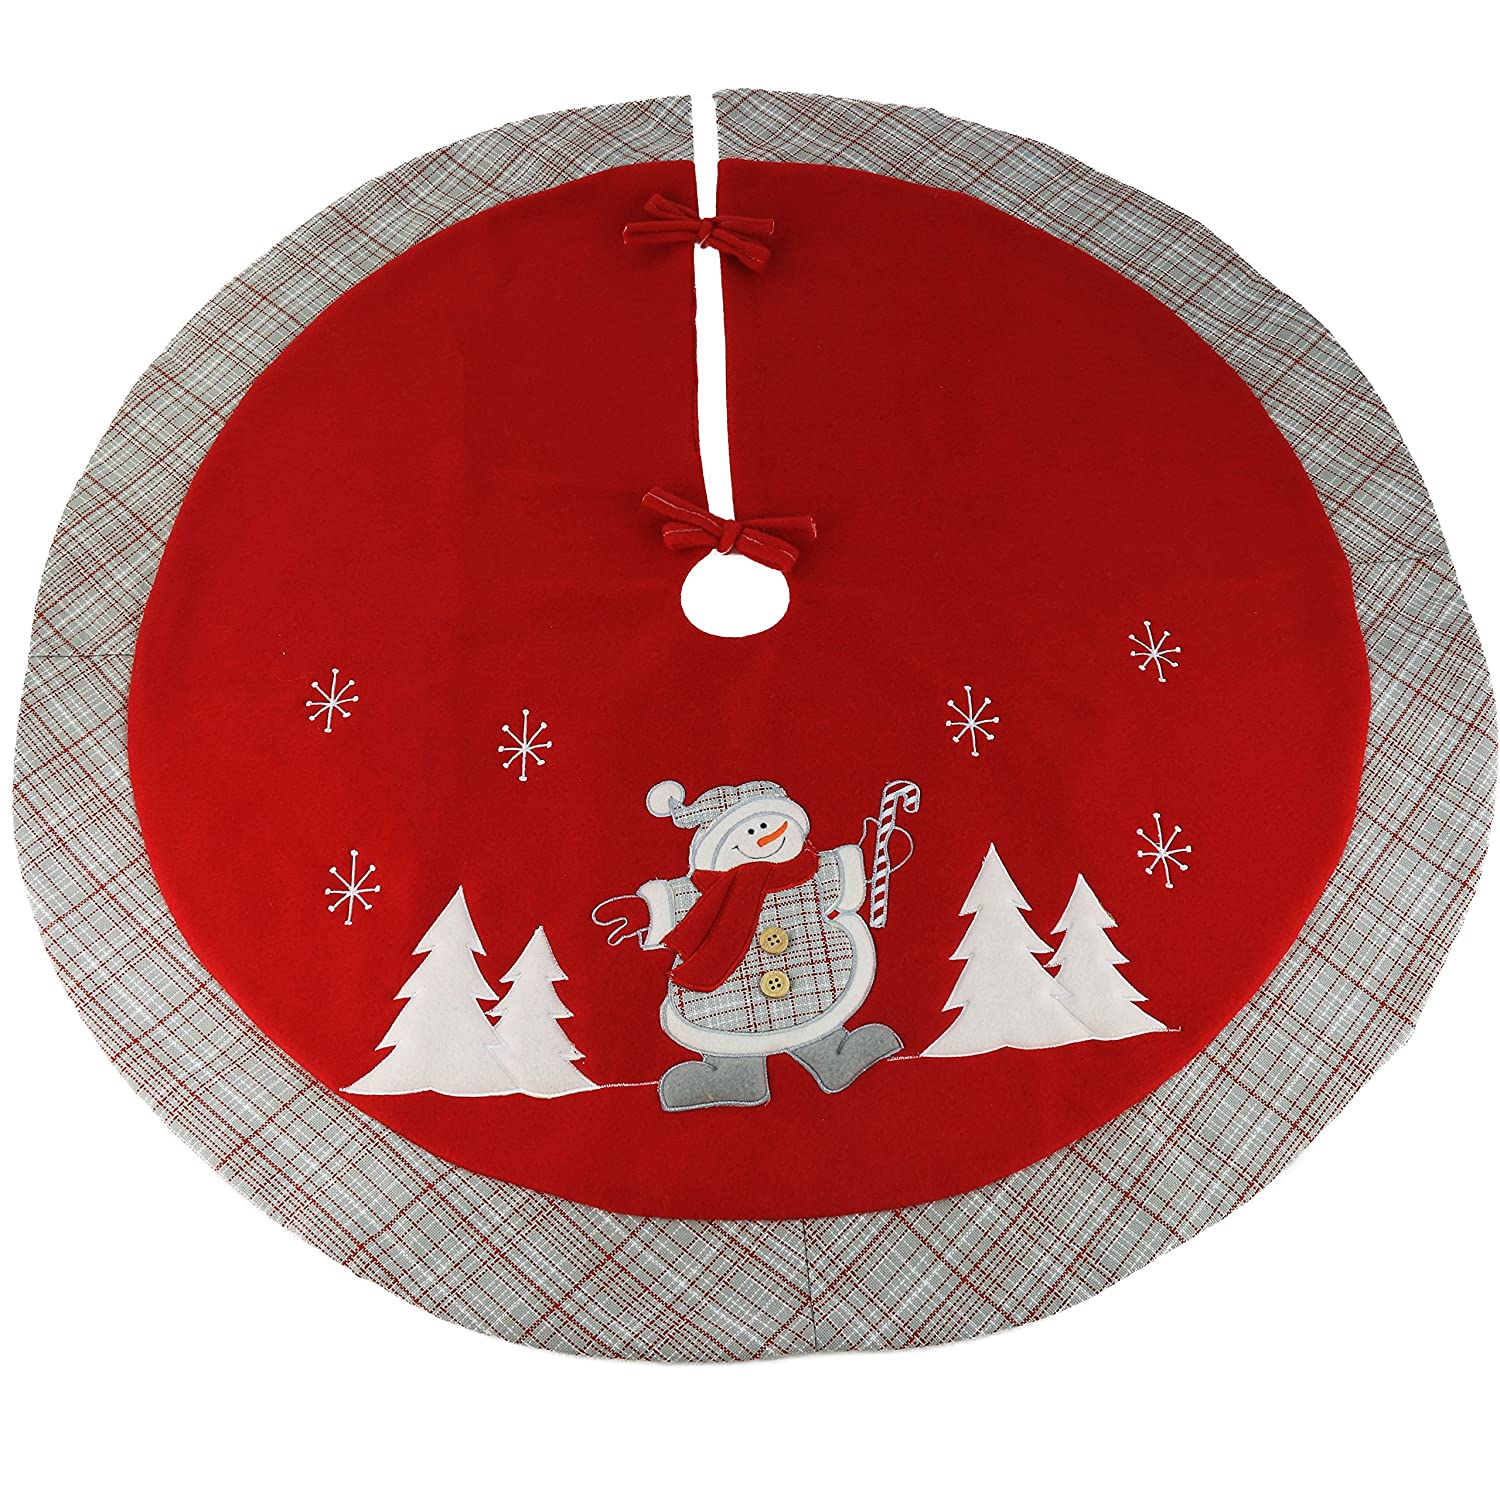 Wewill Brand Luxury Thick Christmas Tree Skirt Circle Decoration Santa Scene Snowman Tree Skirt (Style 3)